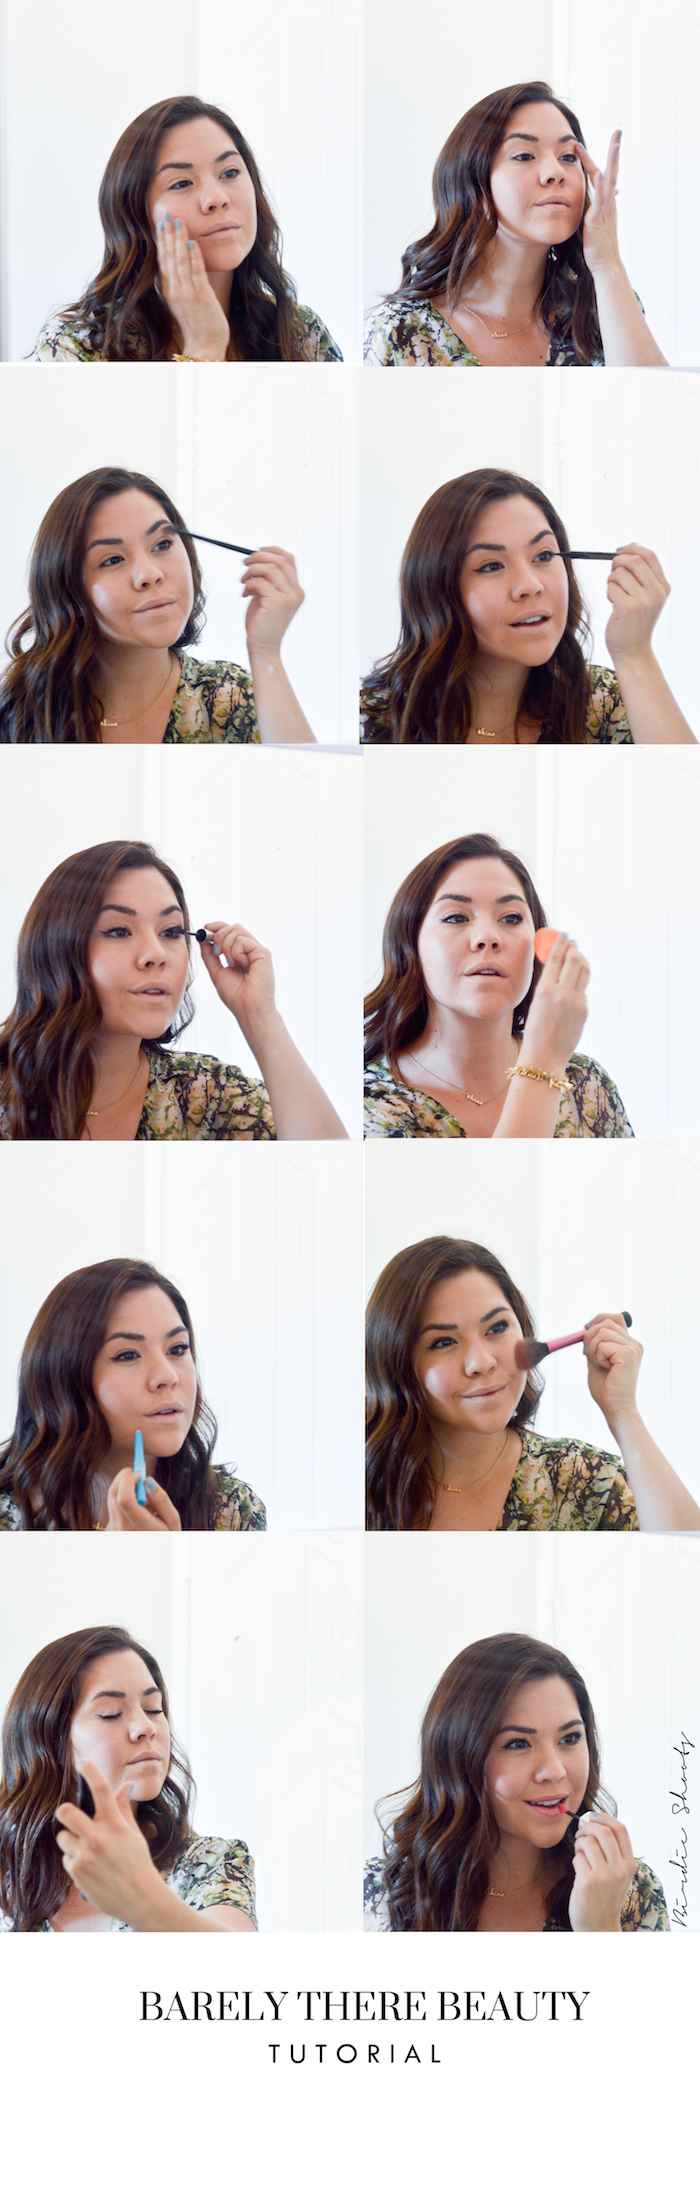 Barely There Beauty Tutorial via. Birdie Shoots